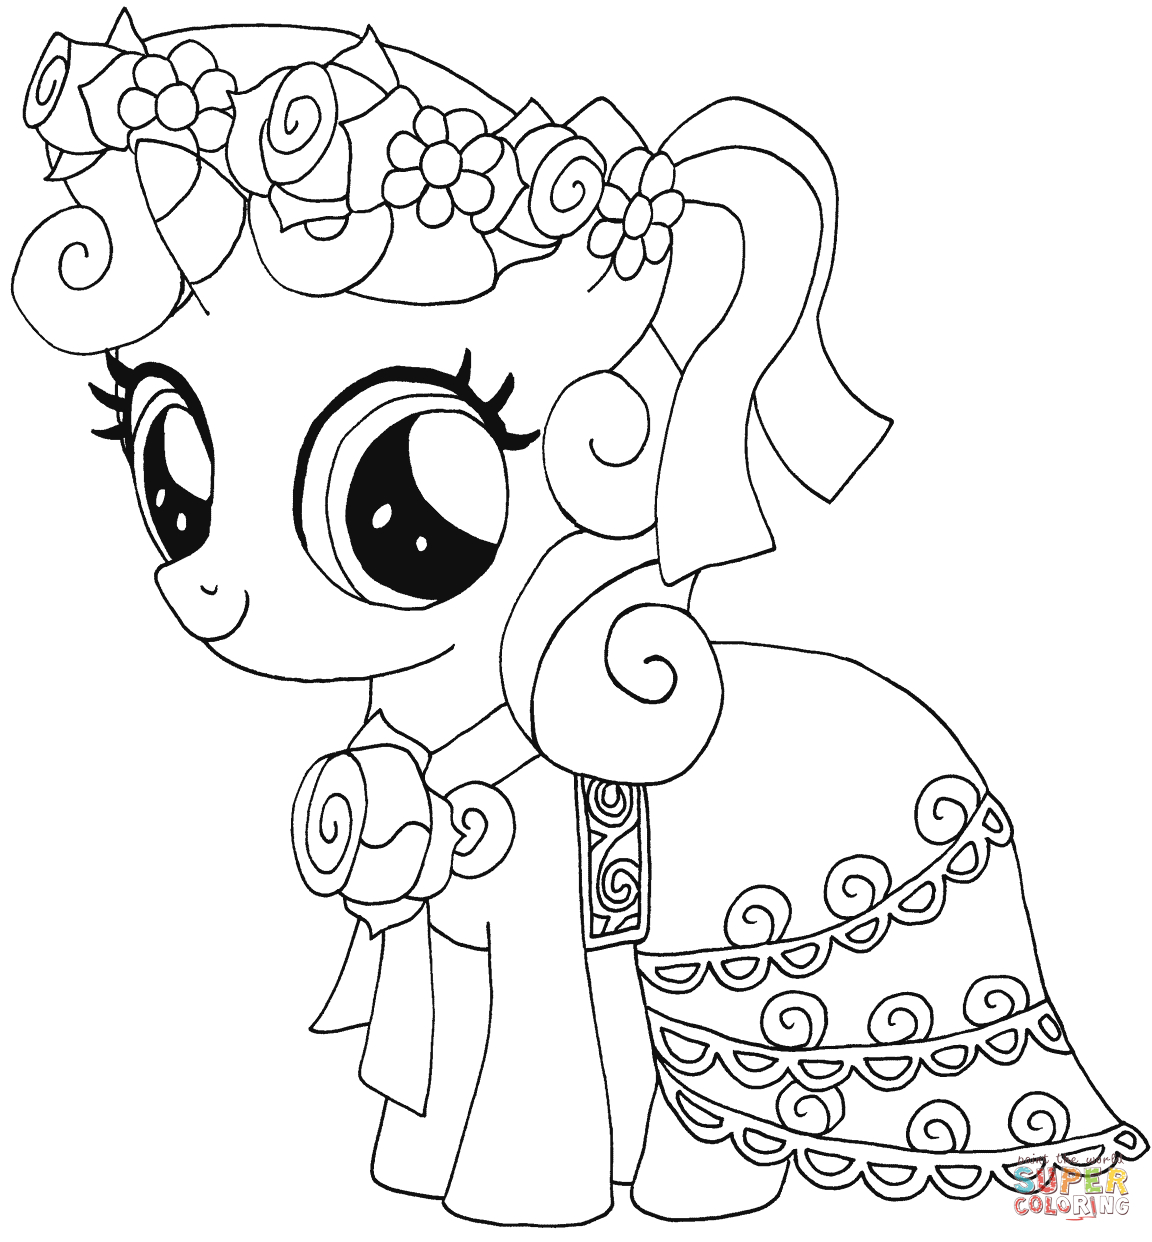 My Little Pony Coloring Pages | Free Coloring Pages - Free Printable Coloring Pages Of My Little Pony